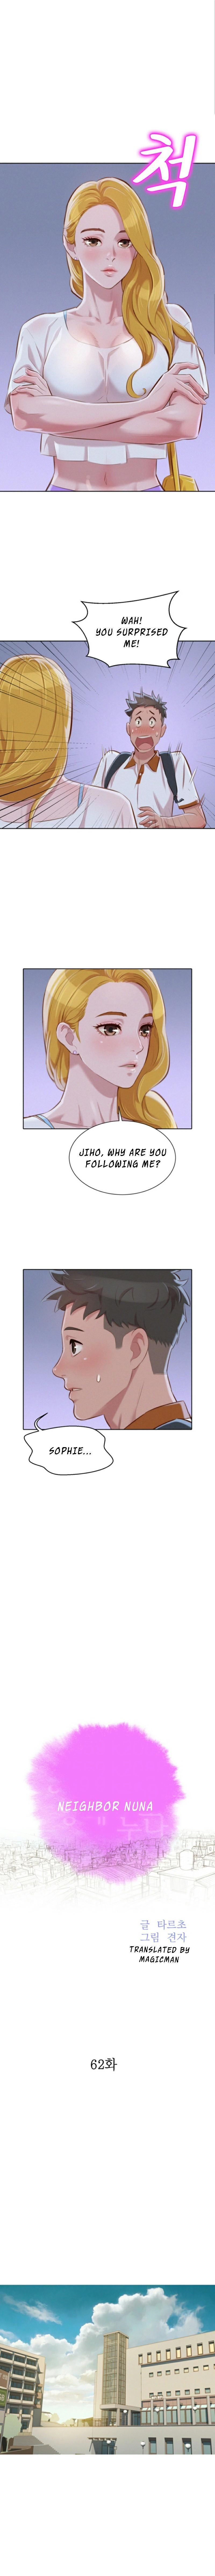 What do you Take me For? Ch.70/? 553